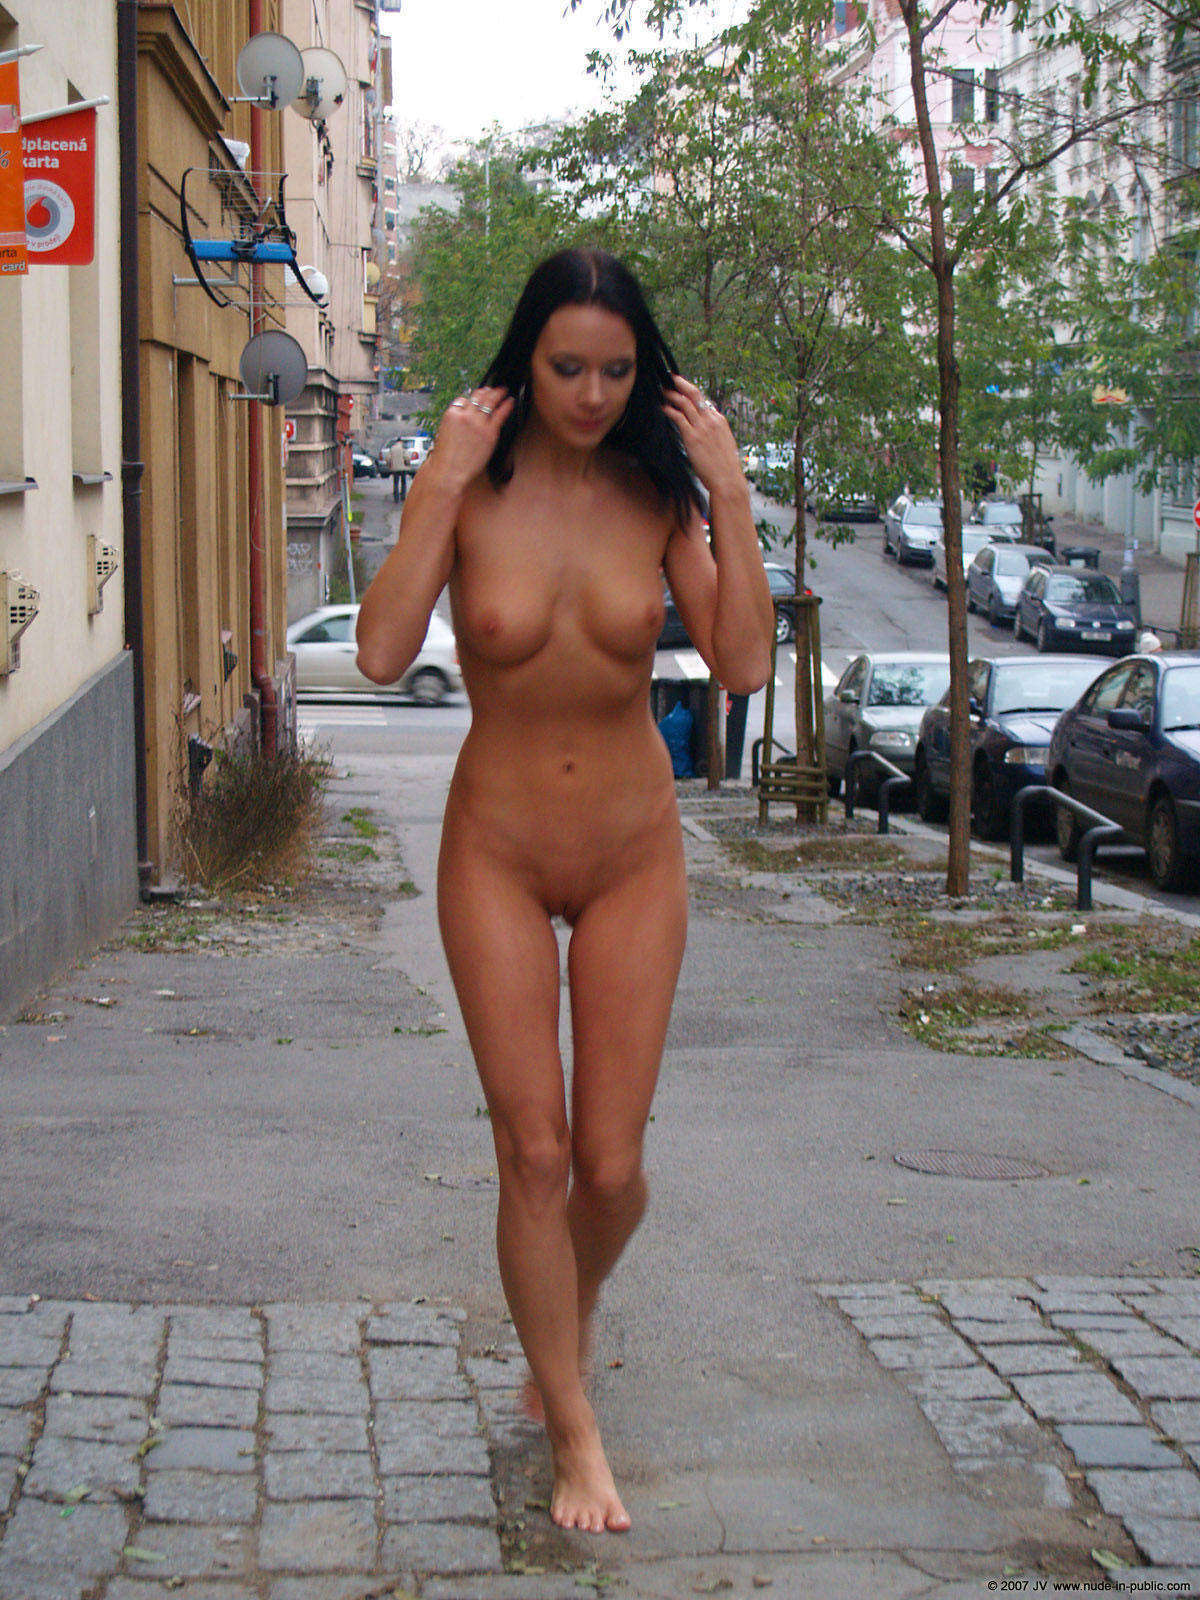 Xxx nacked on the street hentia photo